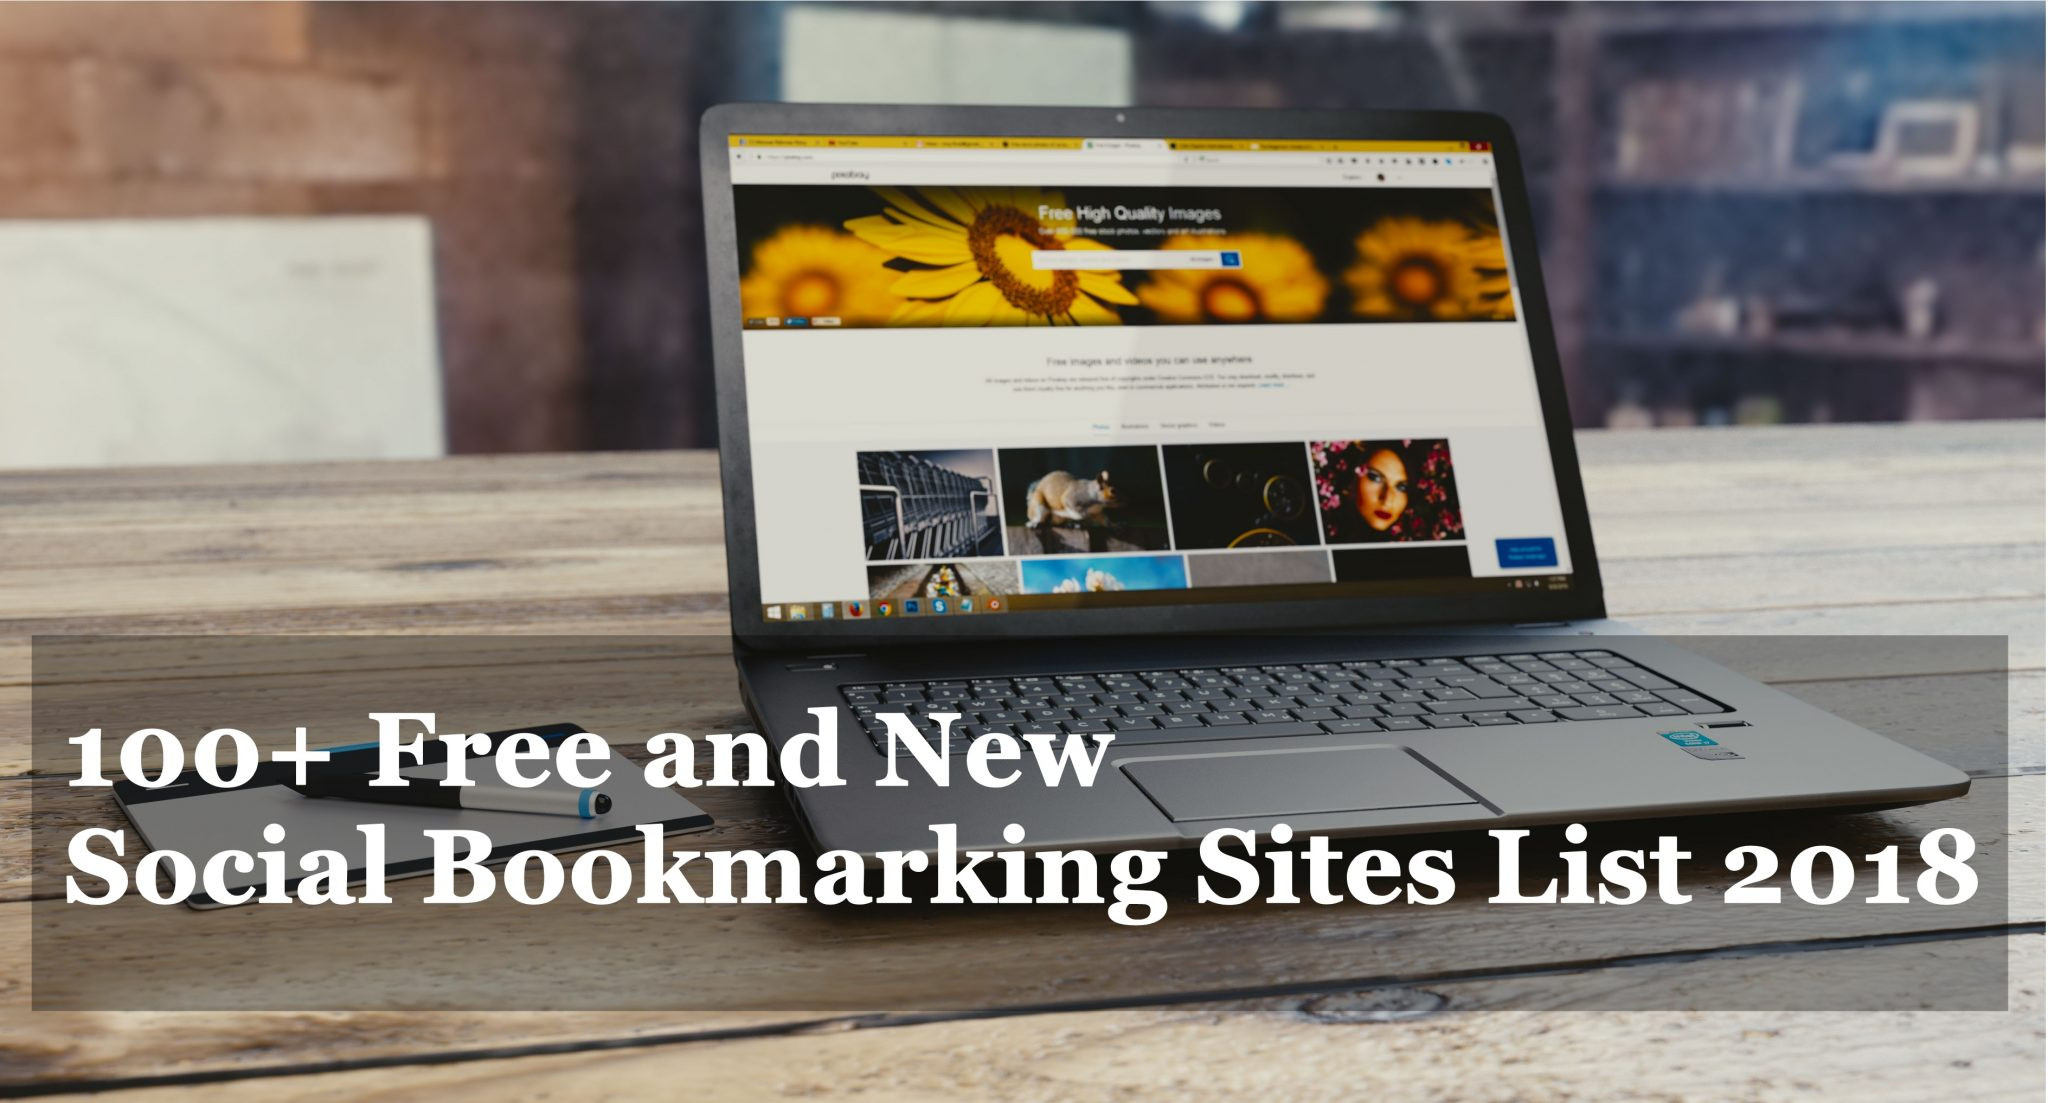 free and new social bookmarking sites list 2018, Wiring diagram